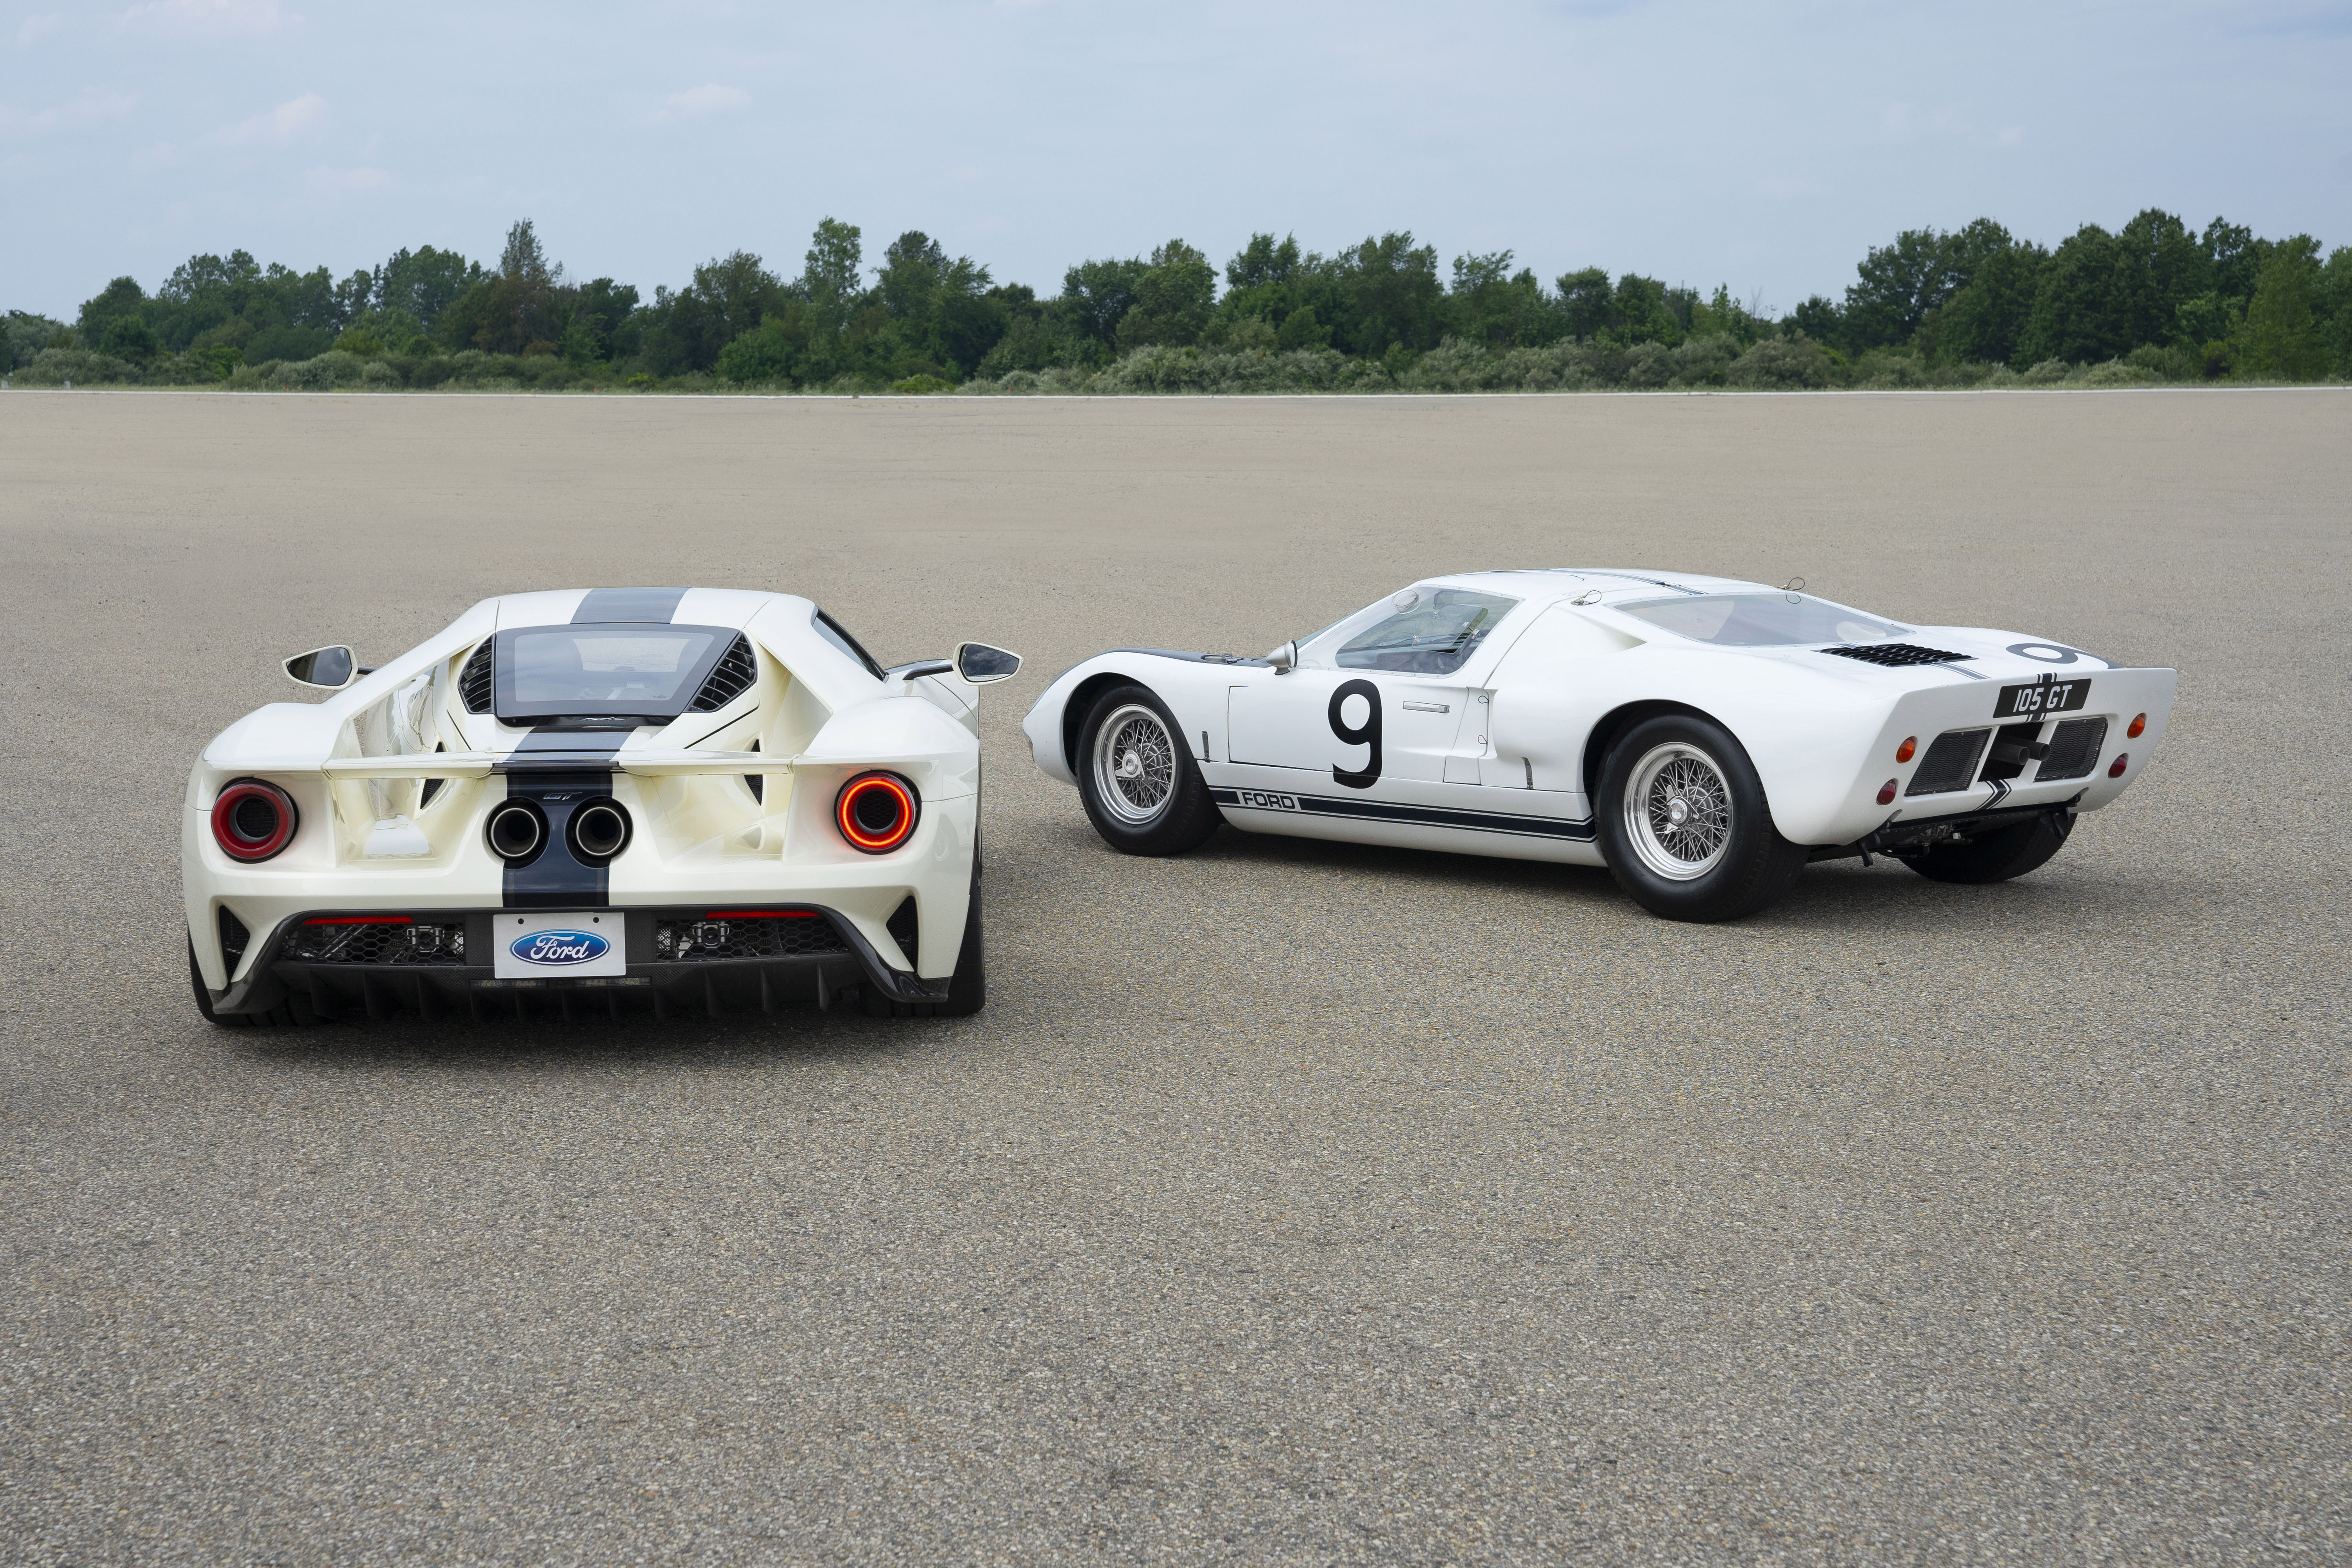 Preproduction 2022 Ford GT Heritage Edition shown.   1964 Ford GT Prototype shown. Closed course..